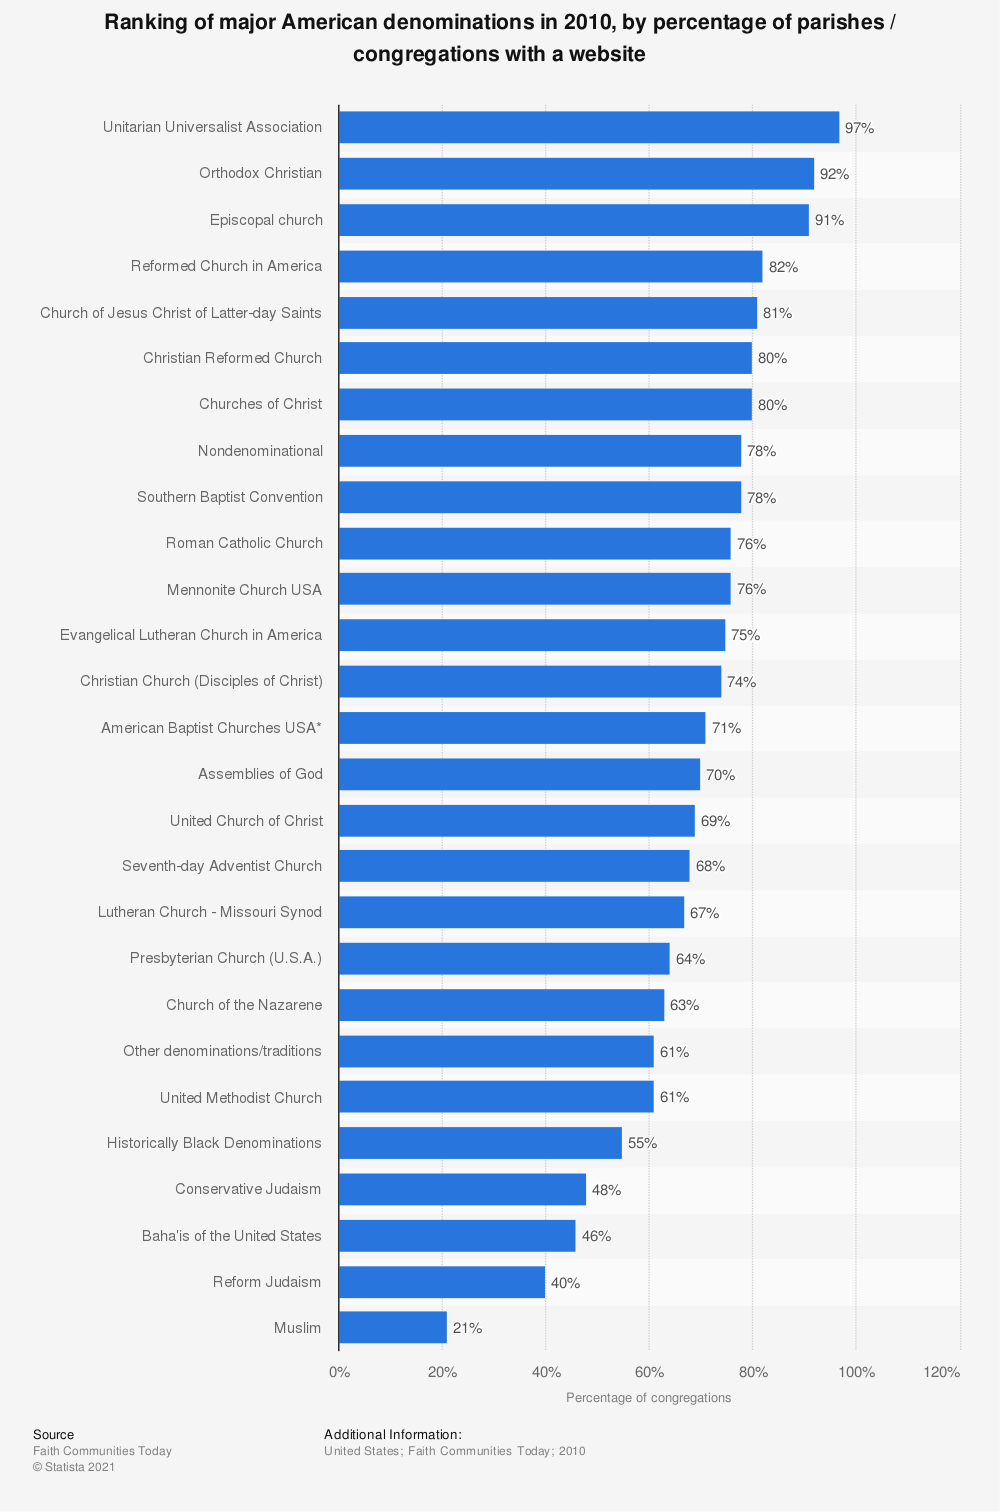 Statistic: Ranking of major American denominations in 2010, by percentage of parishes / congregations with a website | Statista